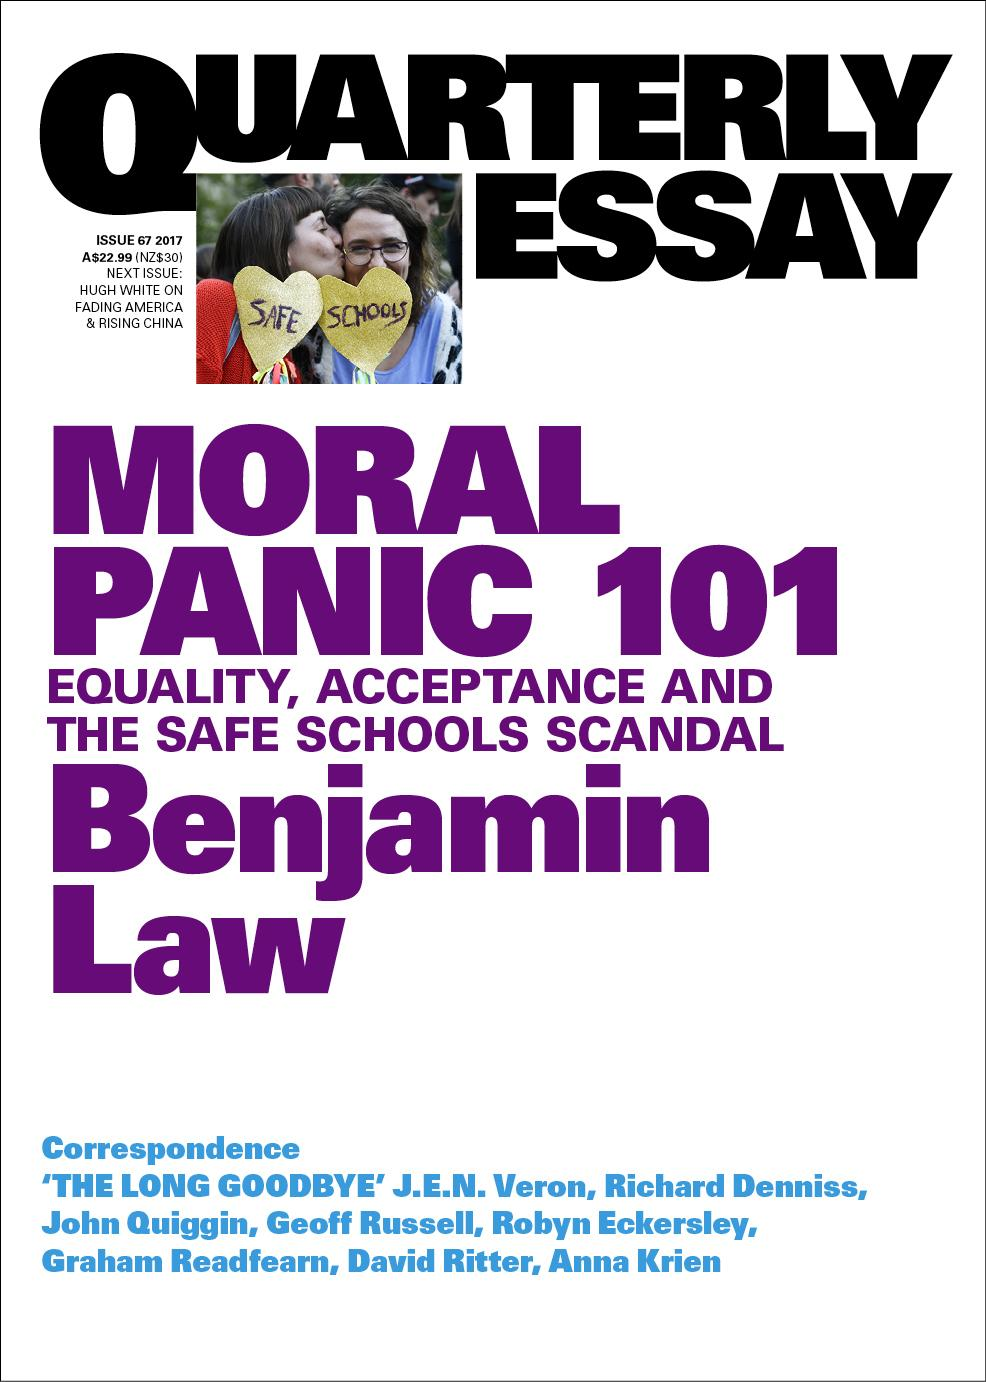 Quarterly Essay 67: Moral Panic 101 - Equality, Acceptance and the Safe Schools Scandal